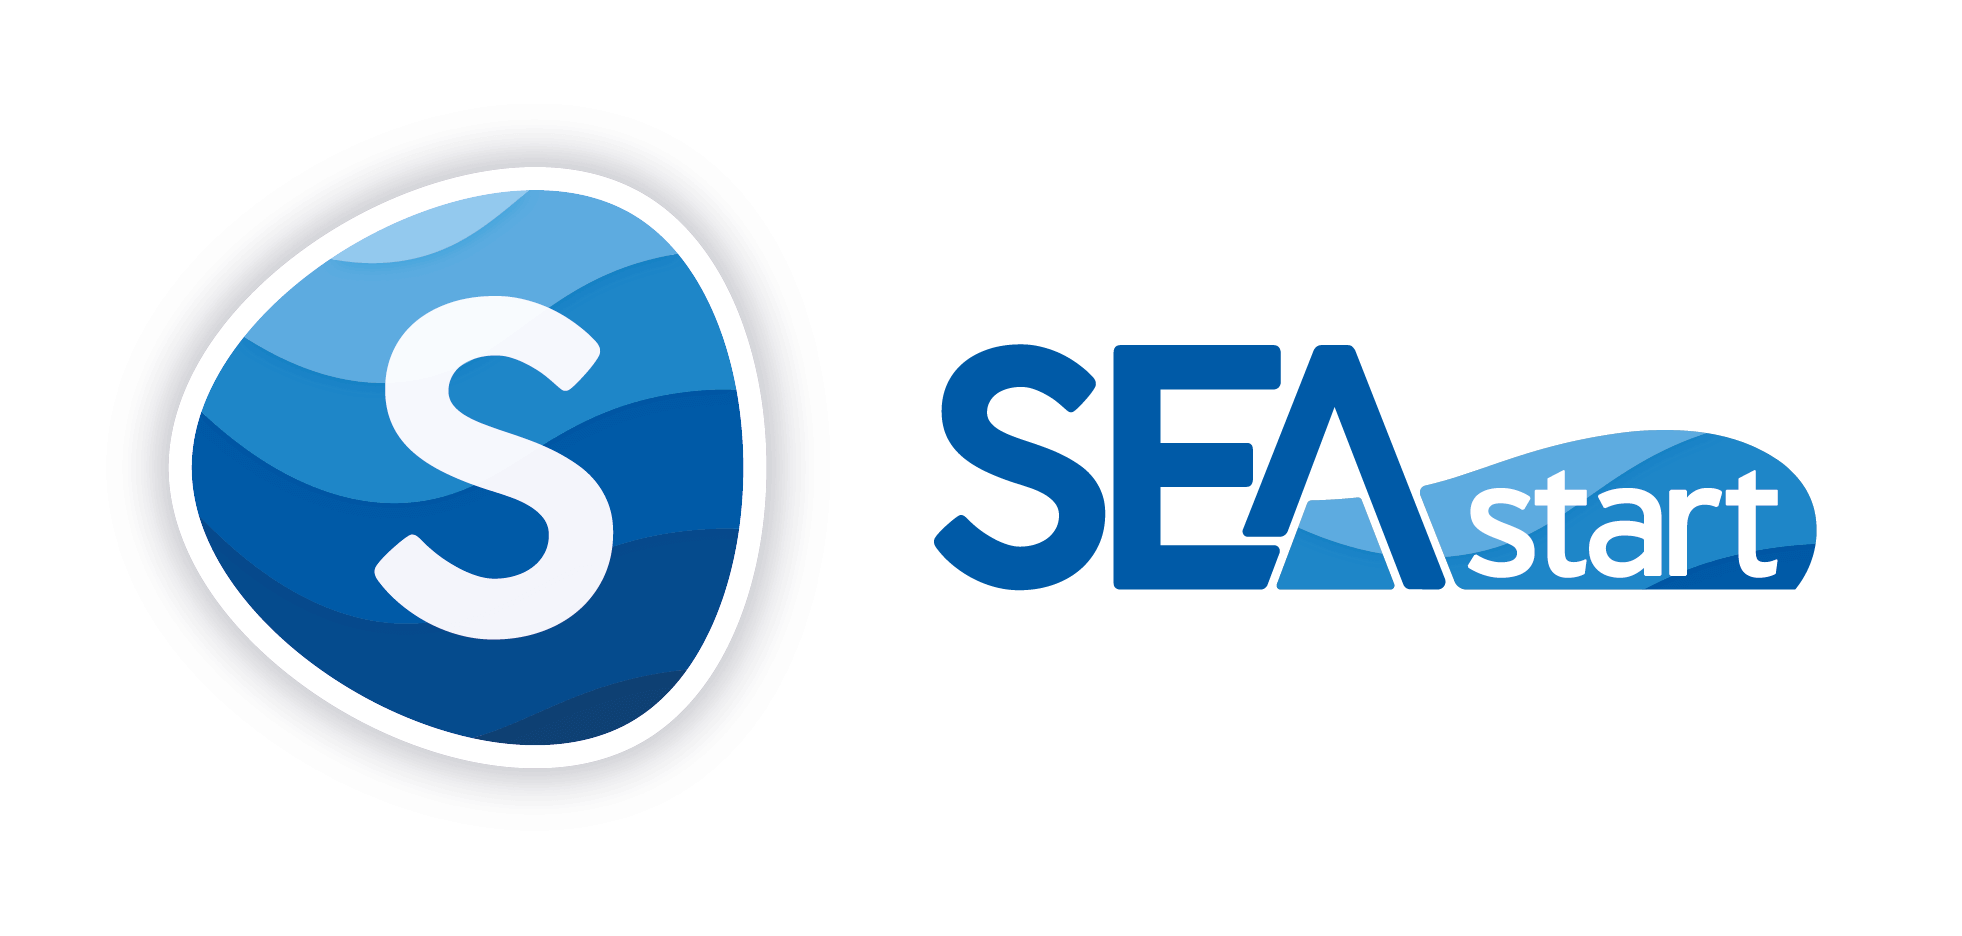 SEASTART Logo Full EDM 3 10 2019, Olenergies